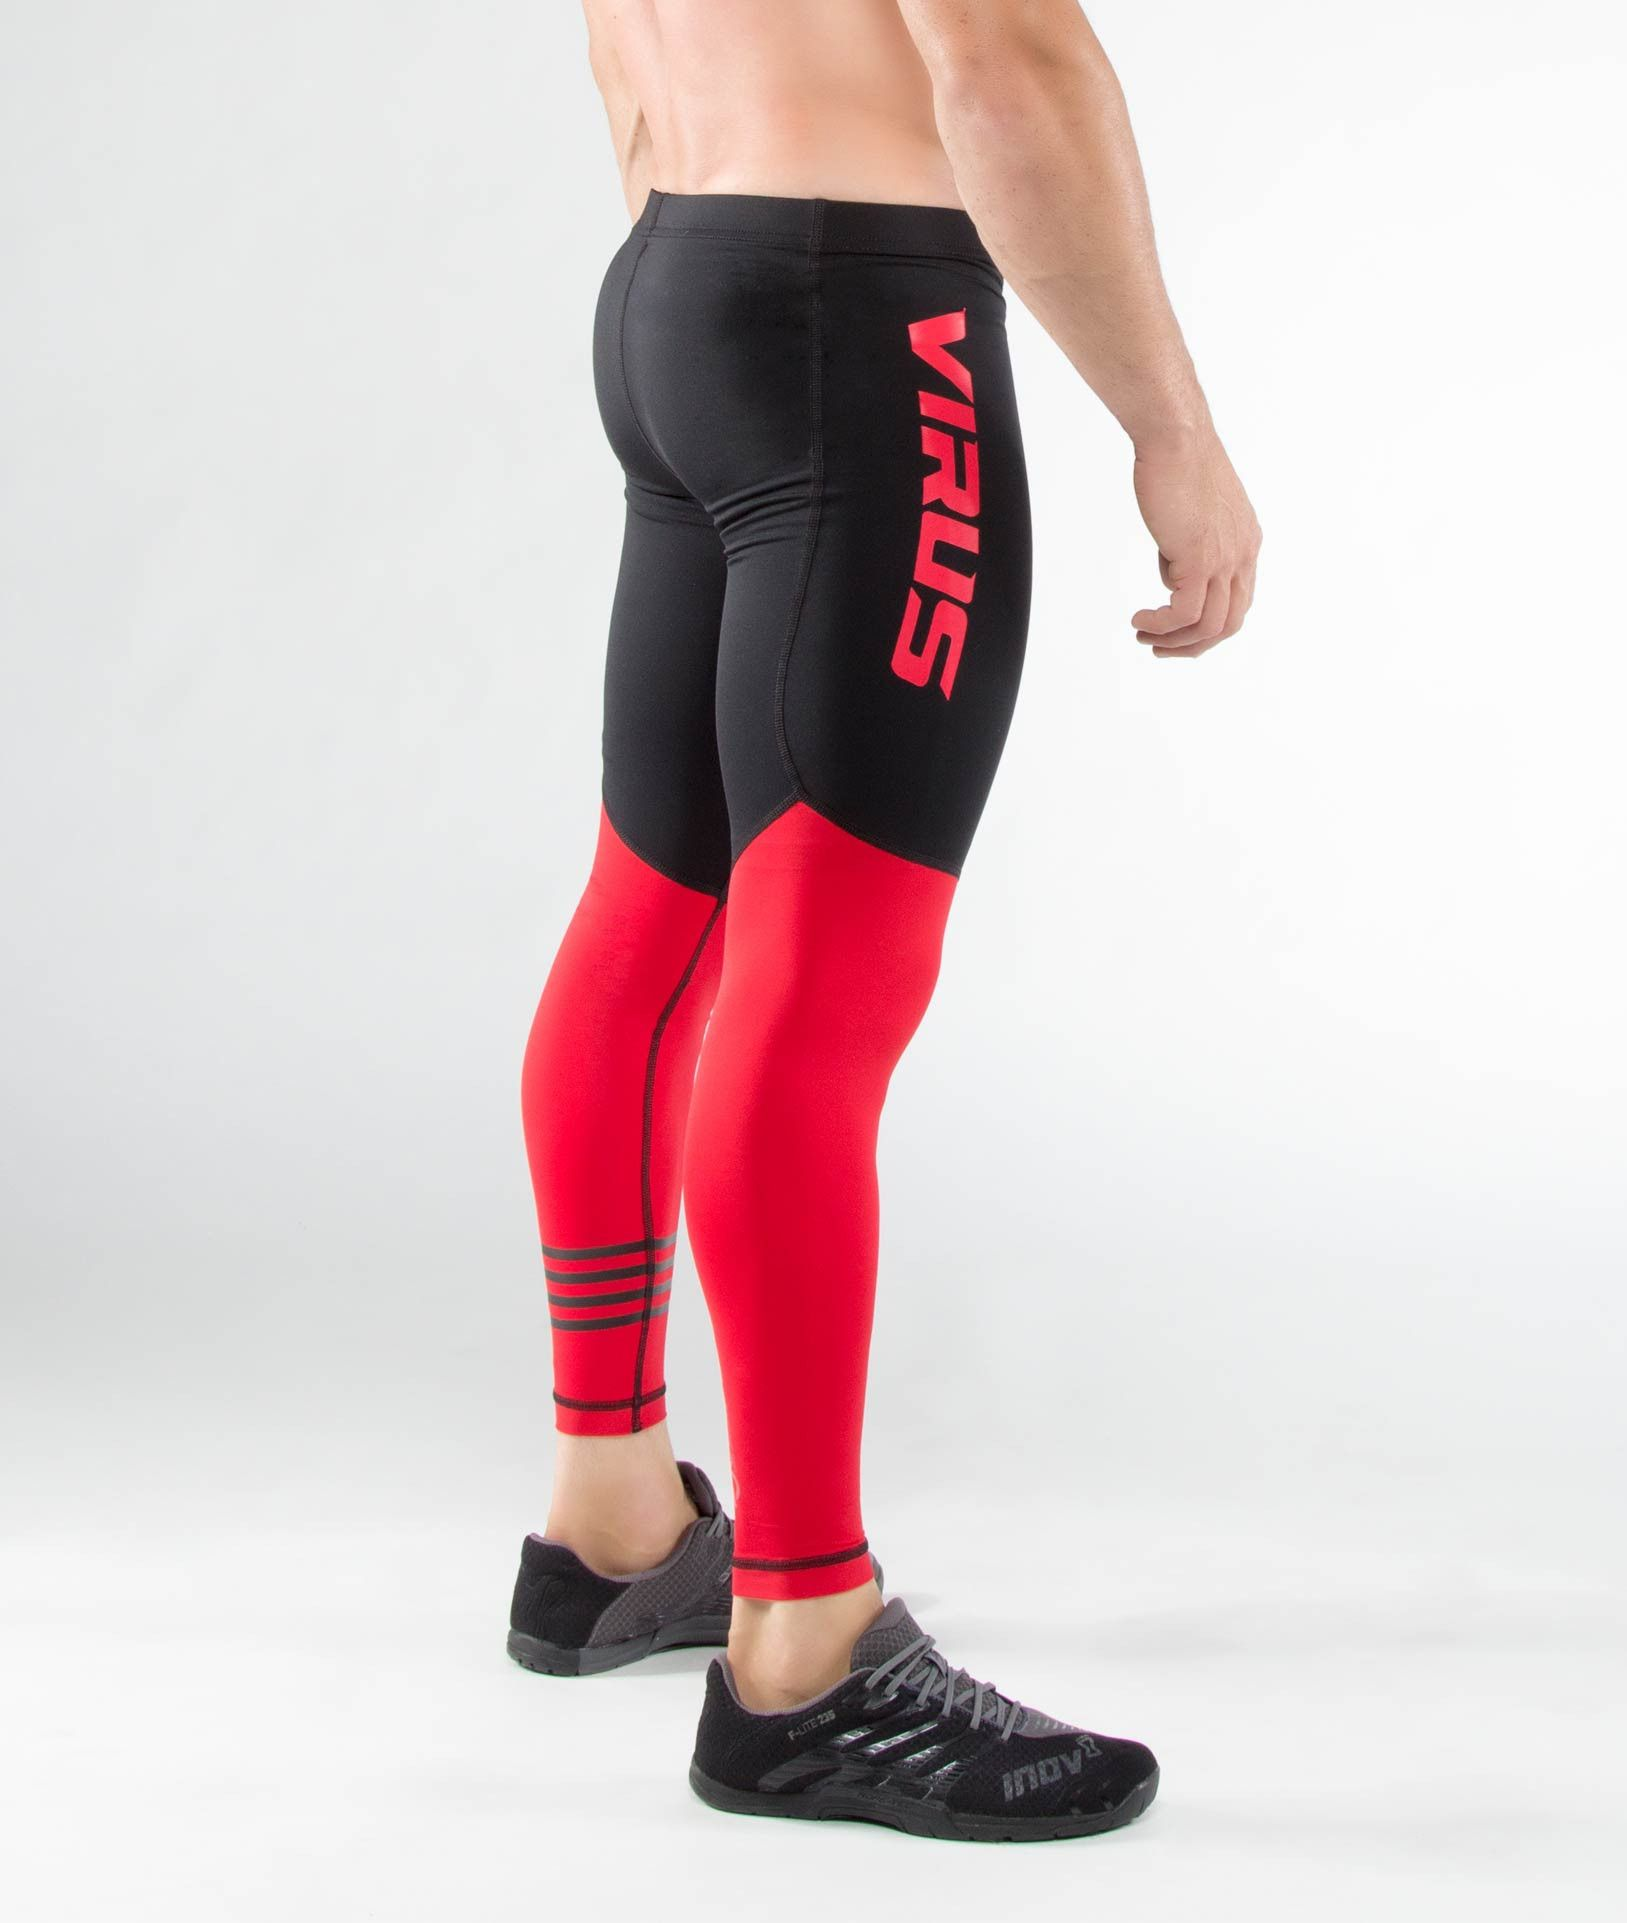 Pin on Athletic Compression Tights